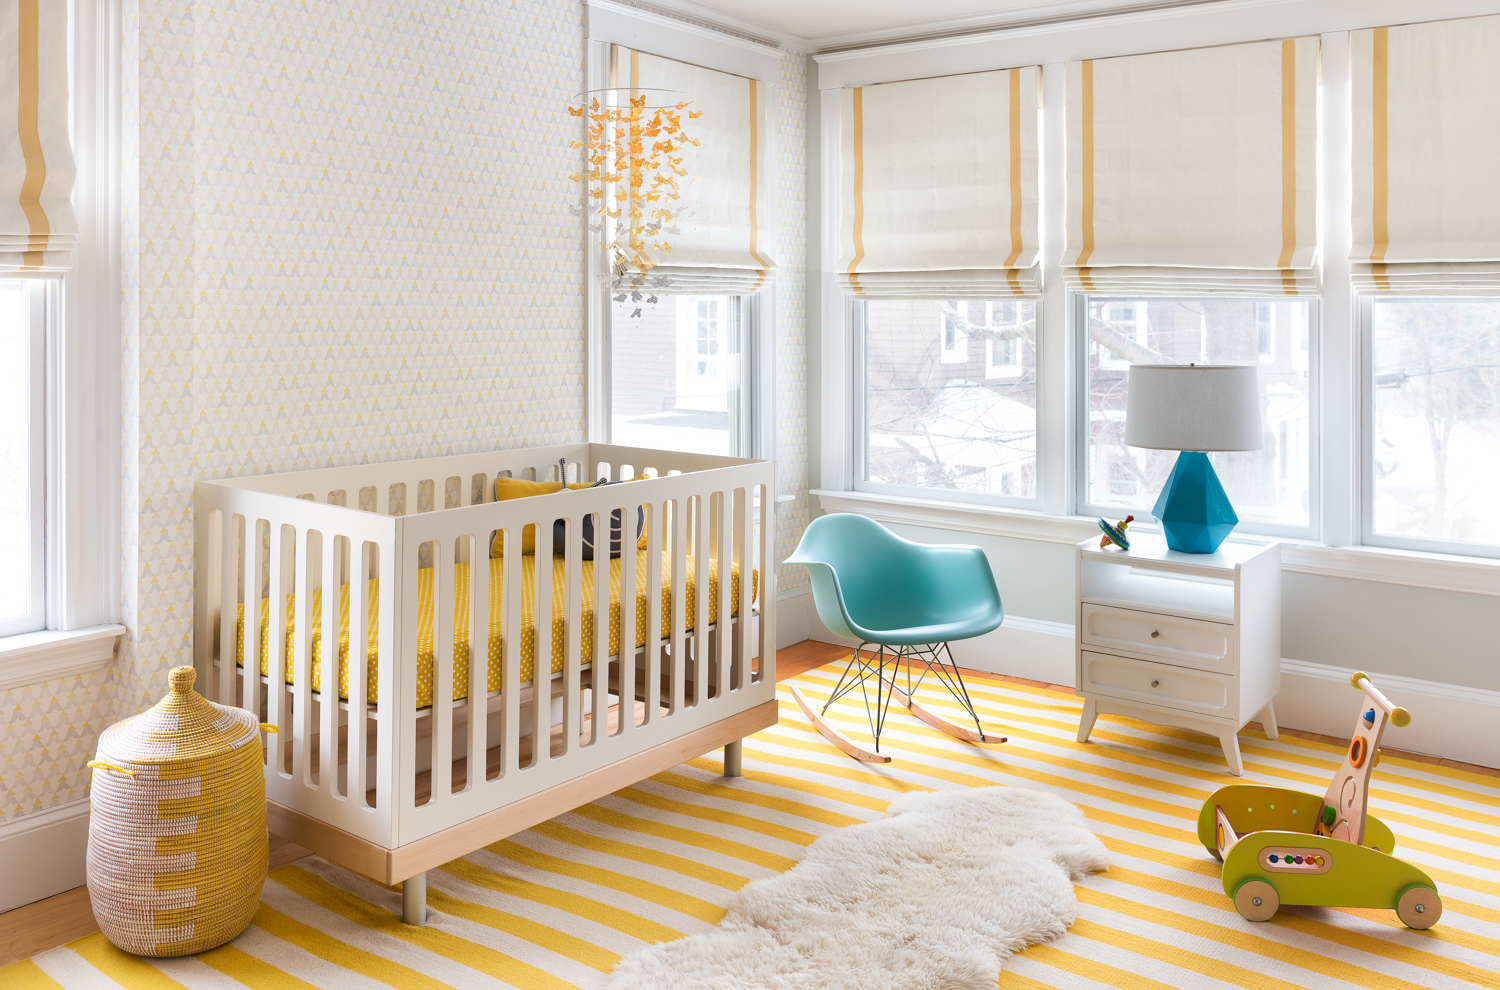 mandarina+studio_yellow+and+gray+nursery+interior+design-003.jpg